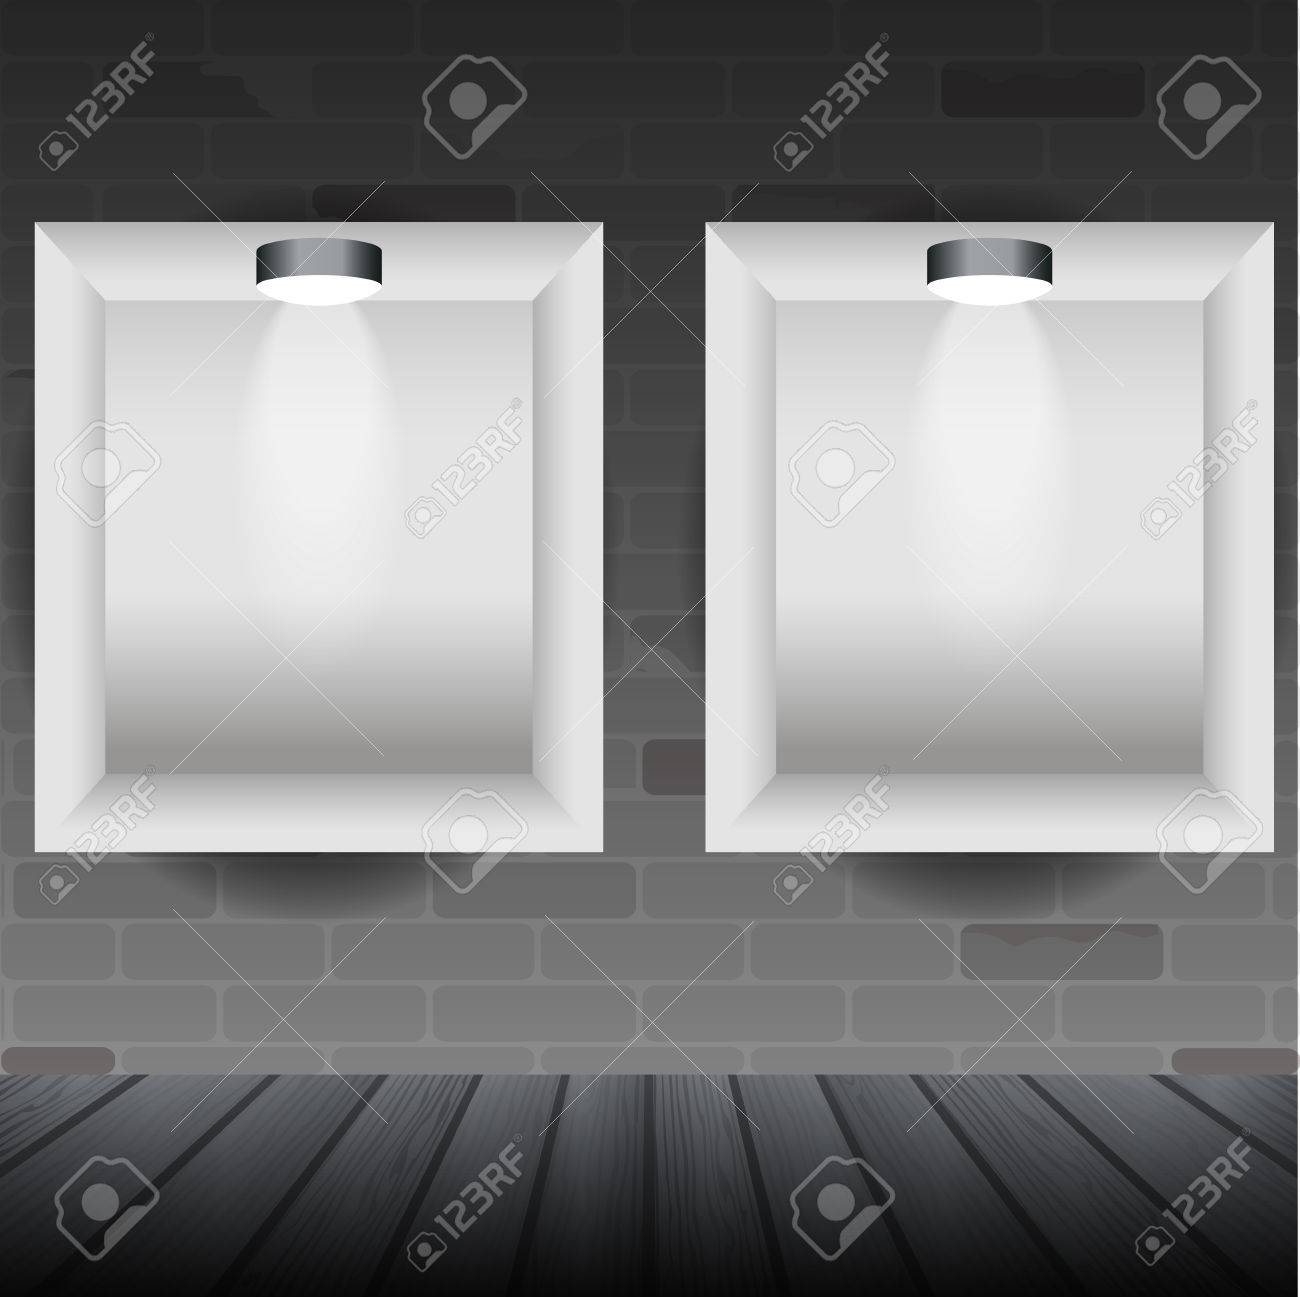 silver modern picture frames. Two Shelves On The Brick Wall, Silver Frames With Lamps, Modern Design  Template Stock Picture I